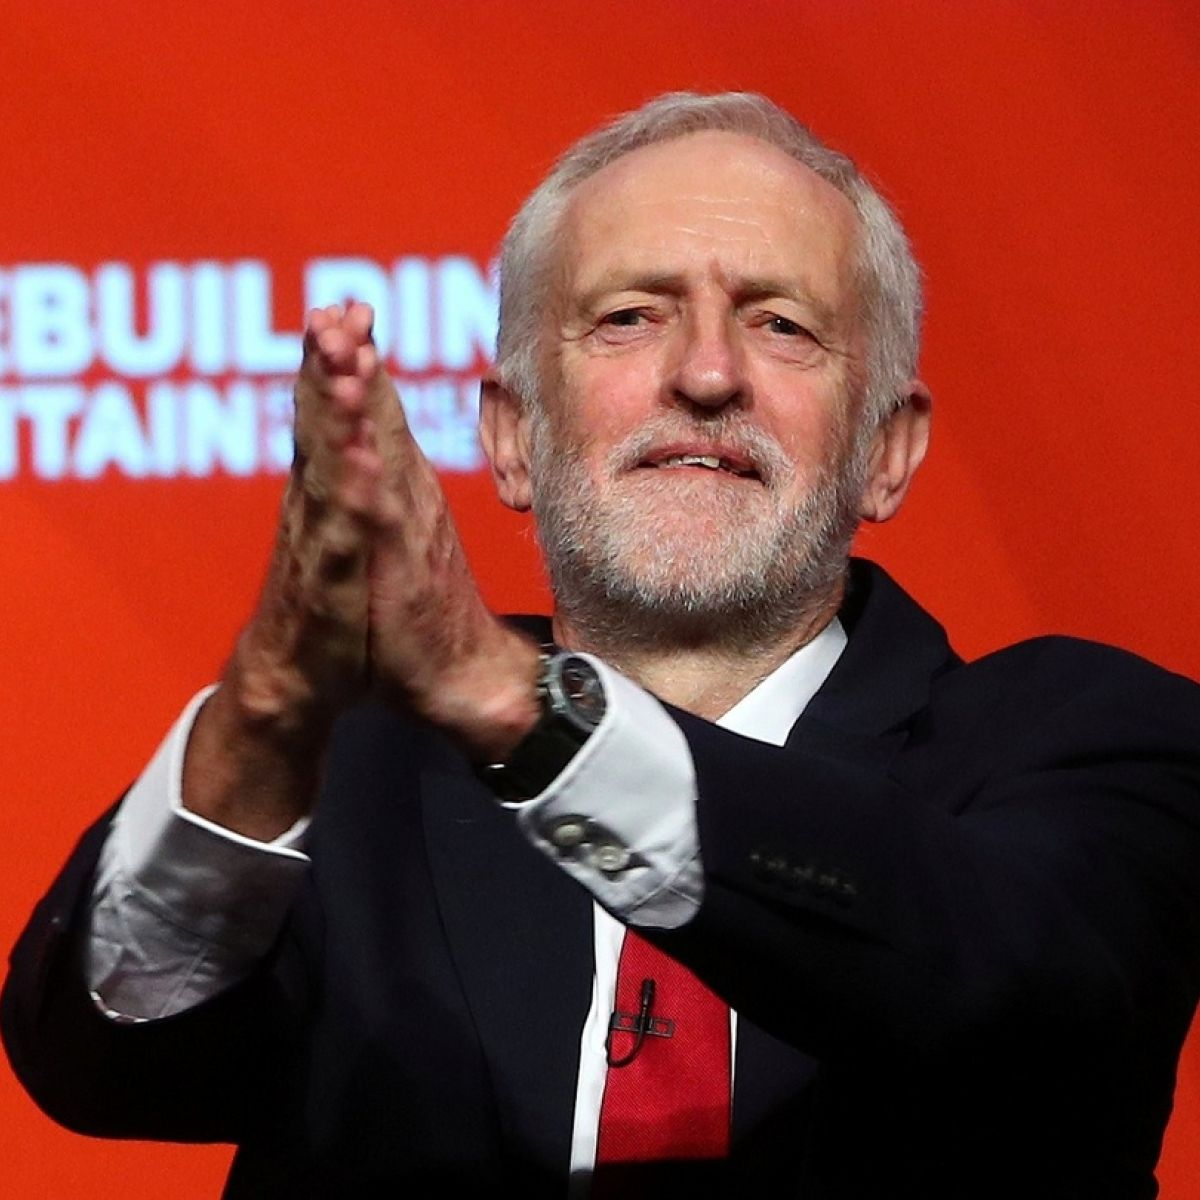 Corbyn Says No-Deal Brexit Would Be a Disaster for U.K.